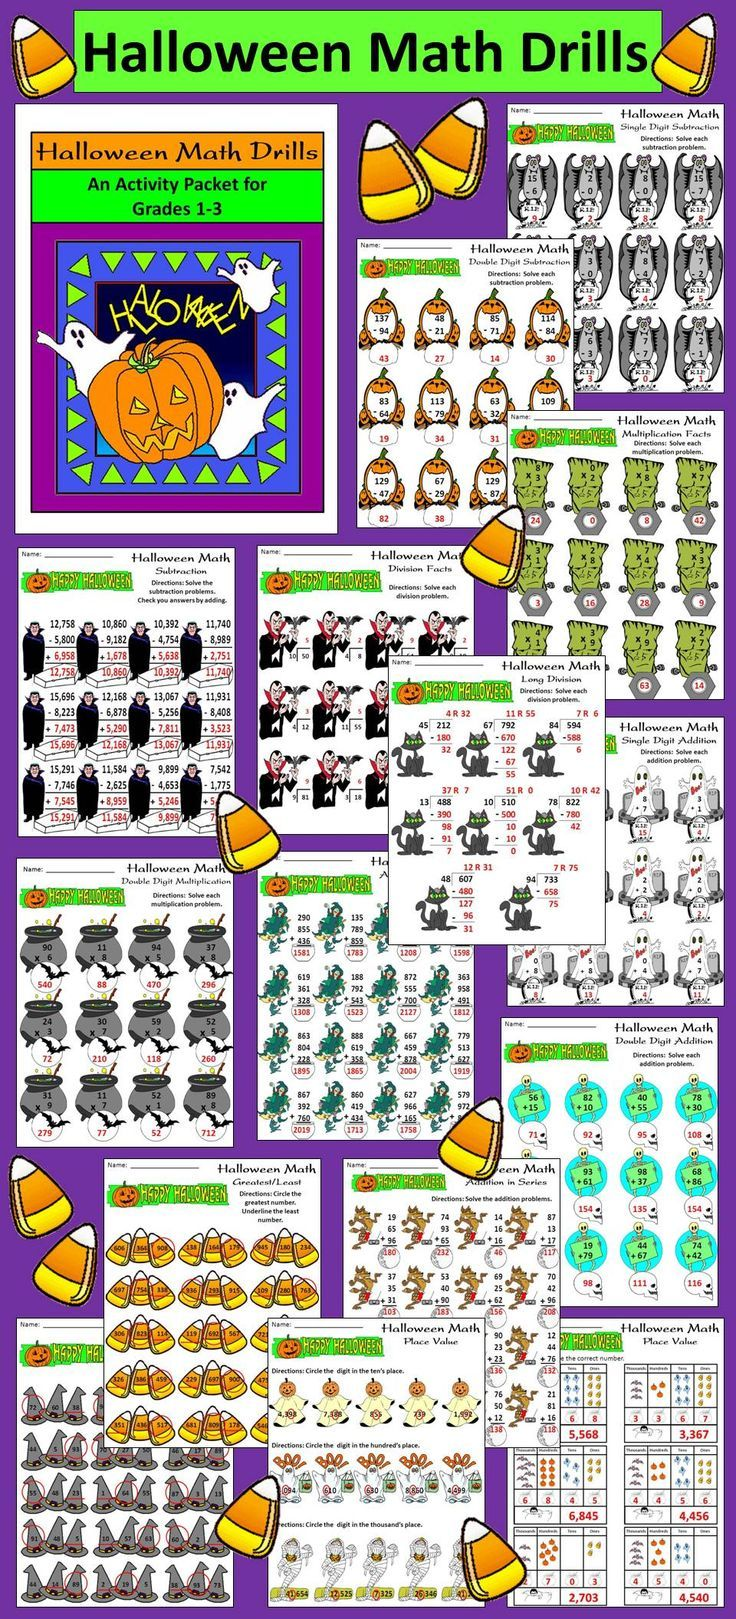 Halloween Math Drills: This packet provides many math exercises with a Halloween…